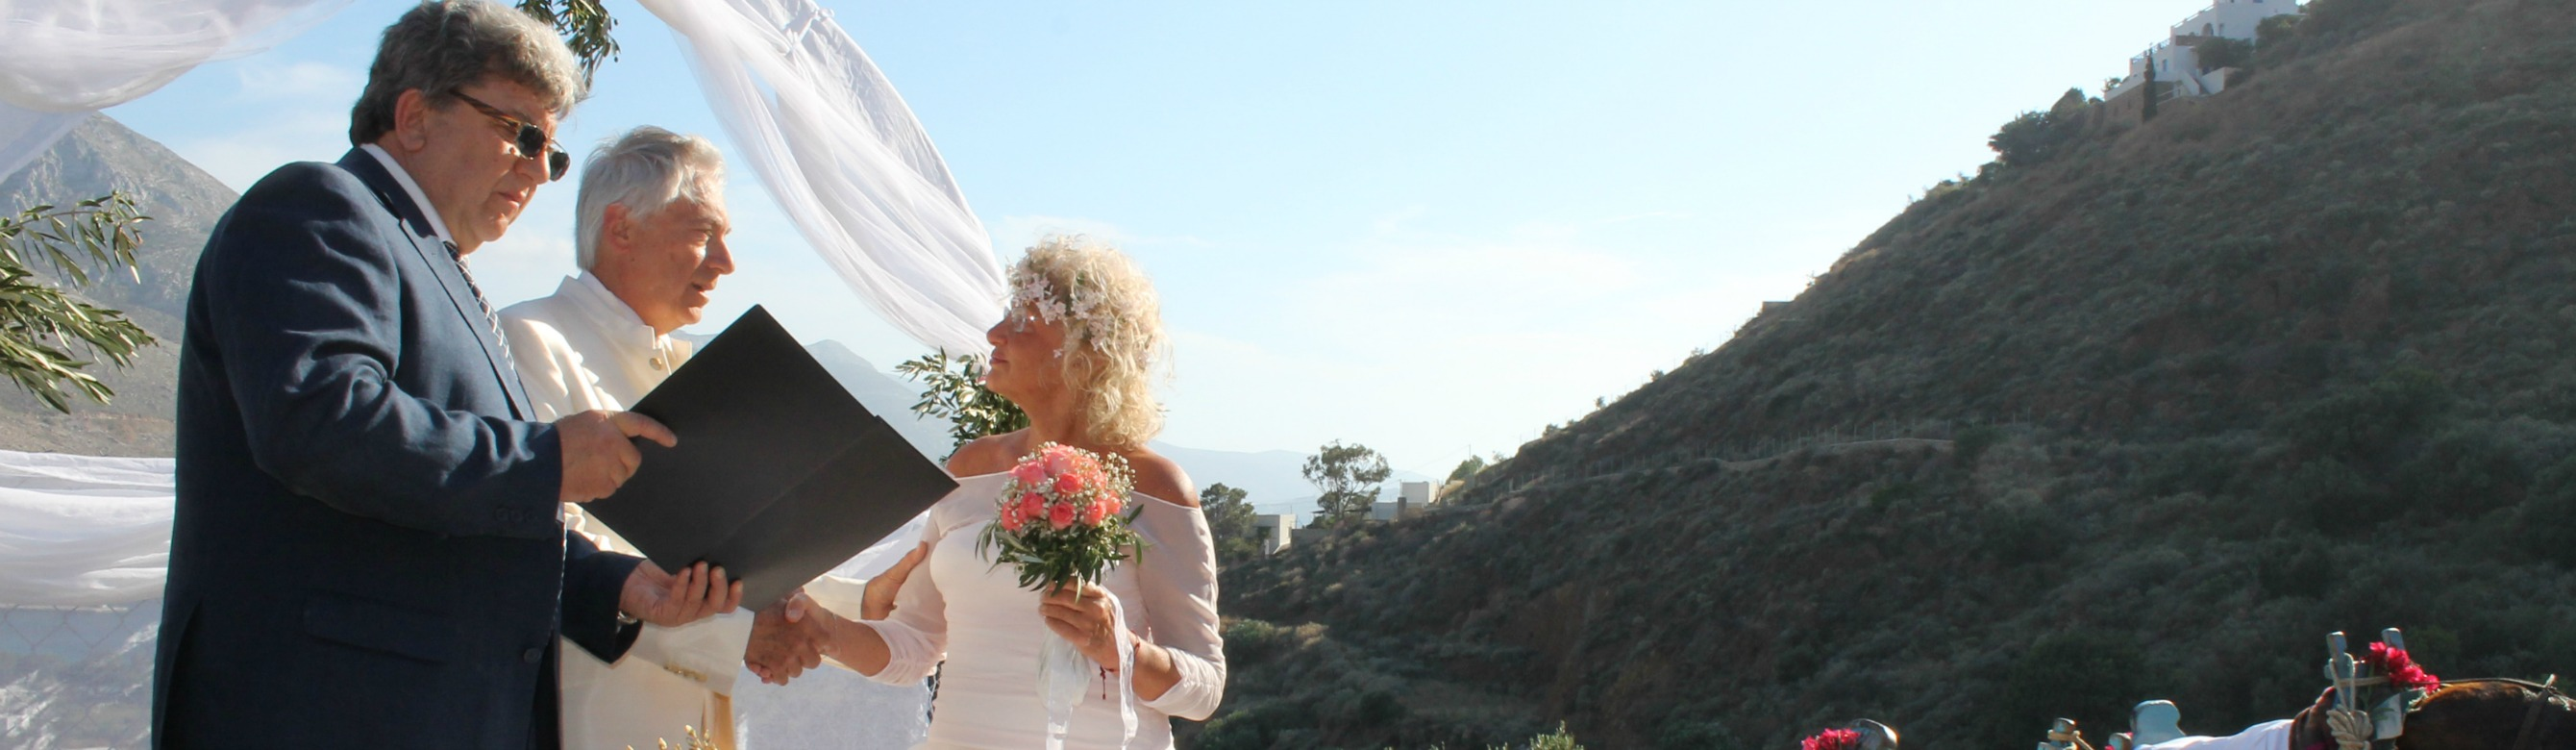 Book your wedding day in St. Nicholas Chapel Amorgos